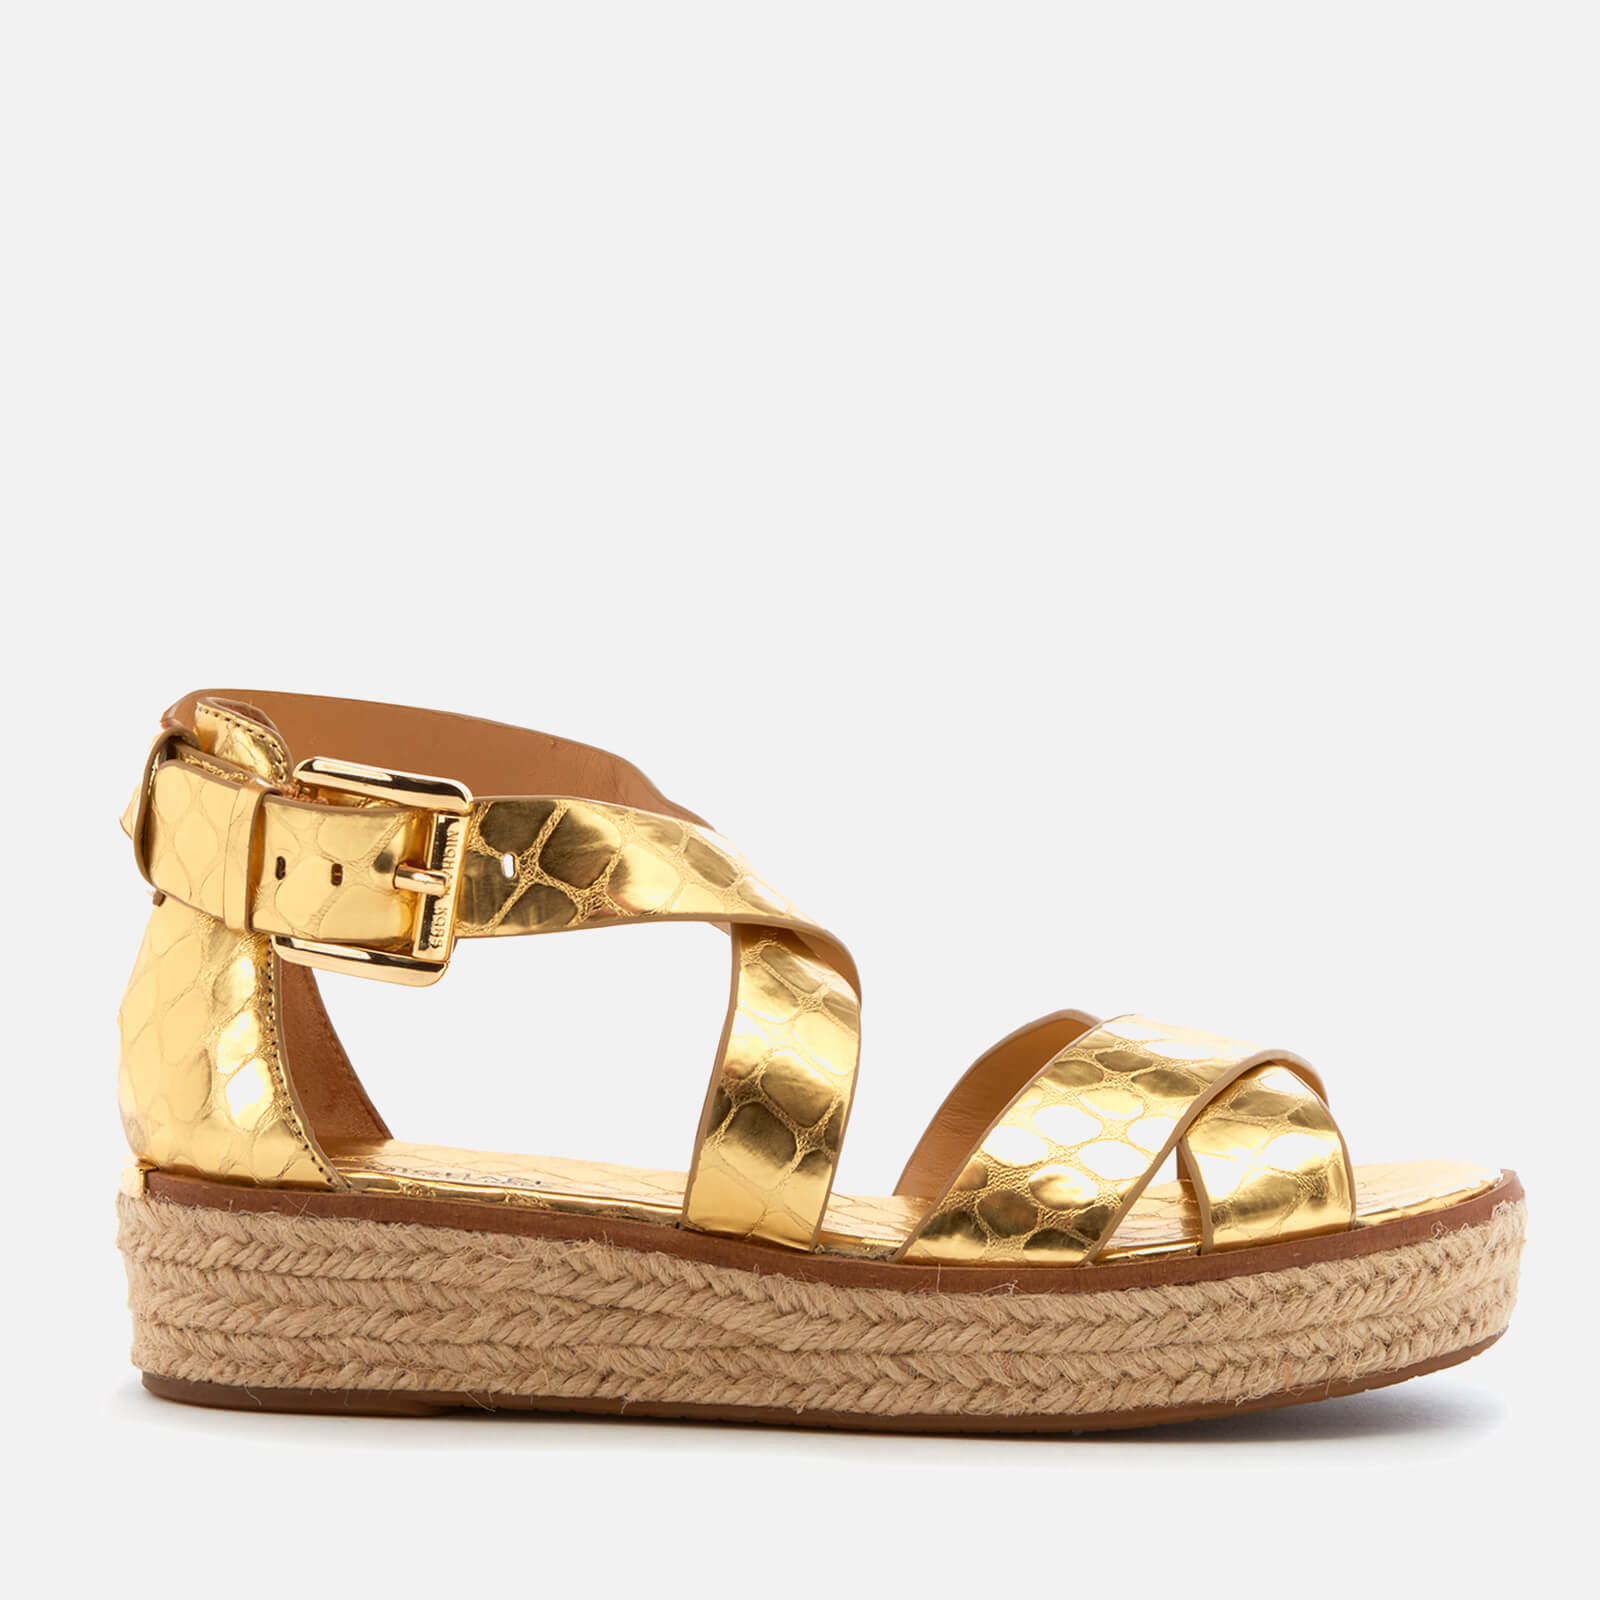 2f1209e5f7a5 MICHAEL MICHAEL KORS Women s Darby Leather Flatform Sandals - Pale Gold -  Free UK Delivery over £50